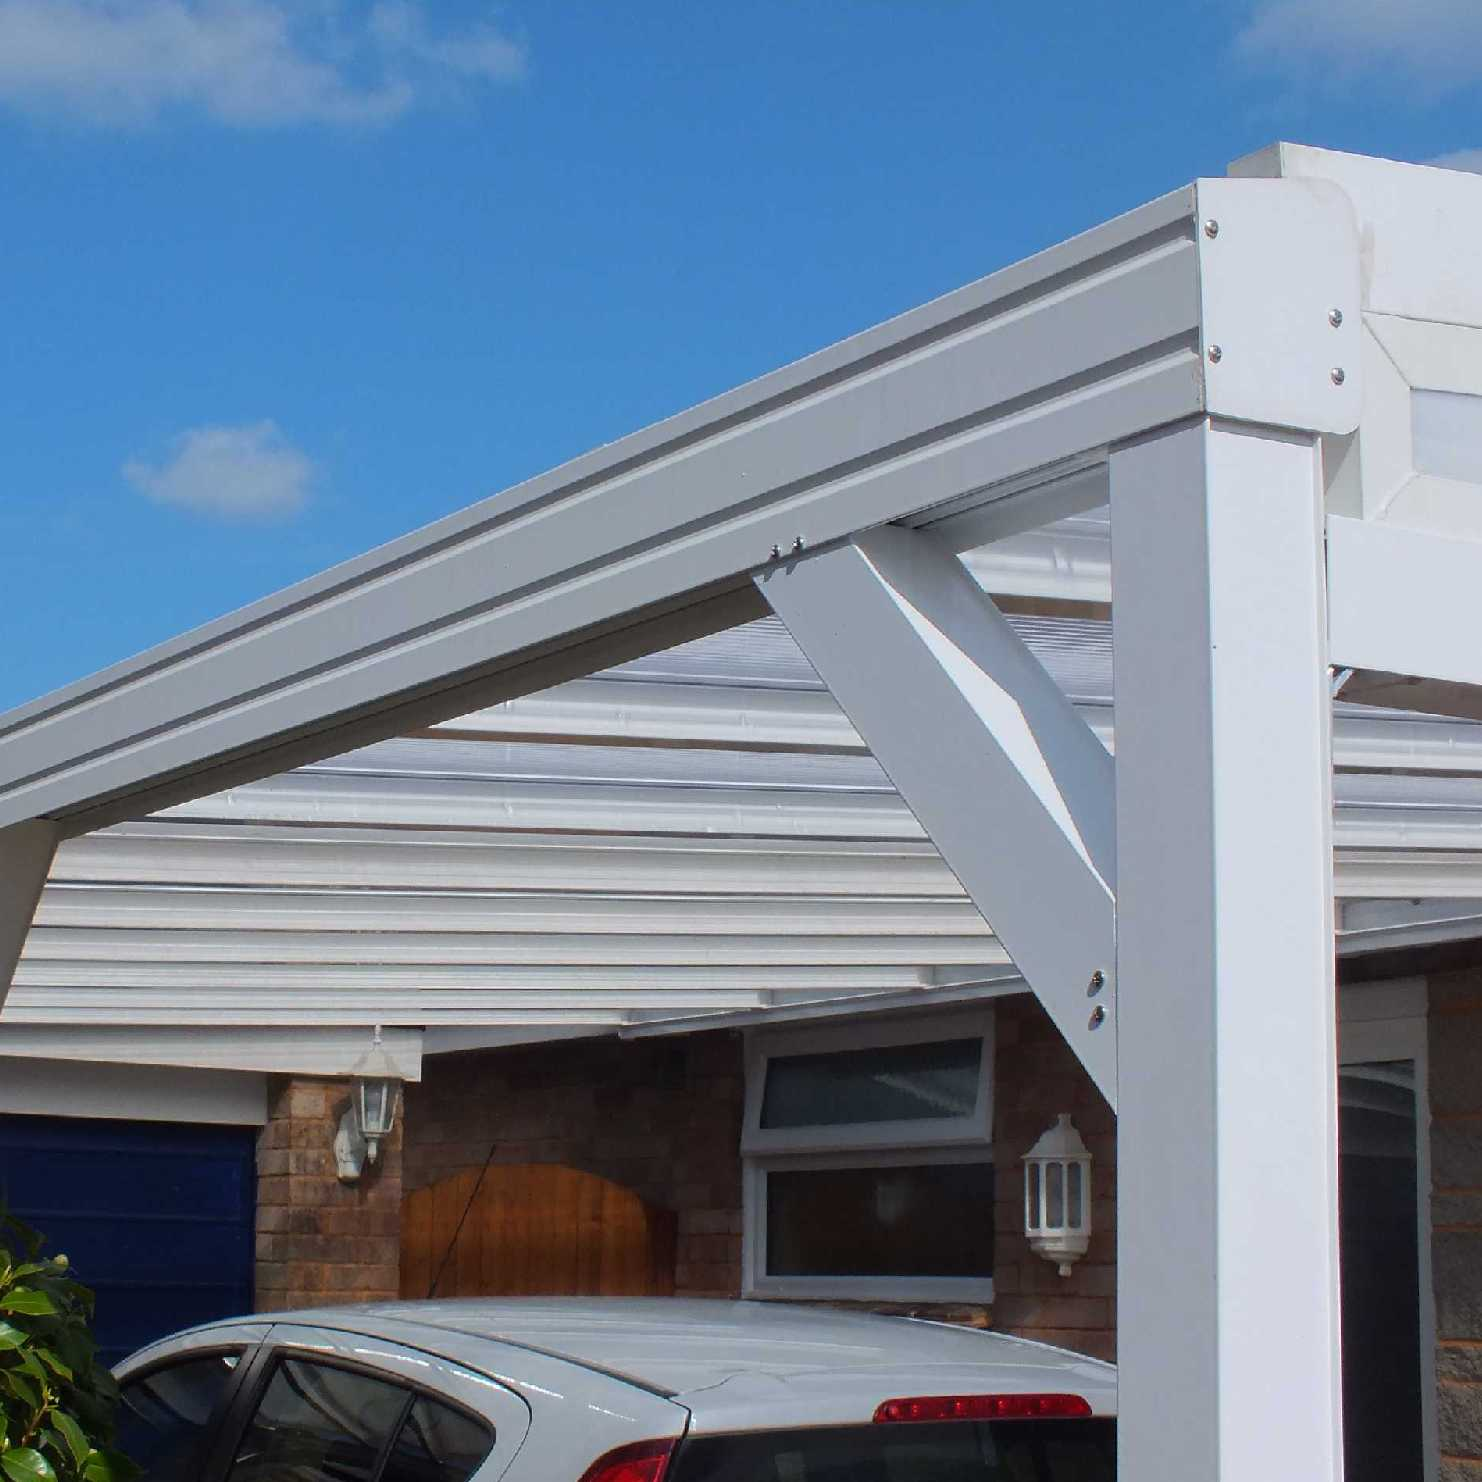 Buy Omega Smart White Lean-To Canopy with 16mm Polycarbonate Glazing - 5.2m (W) x 3.0m (P), (3) Supporting Posts online today